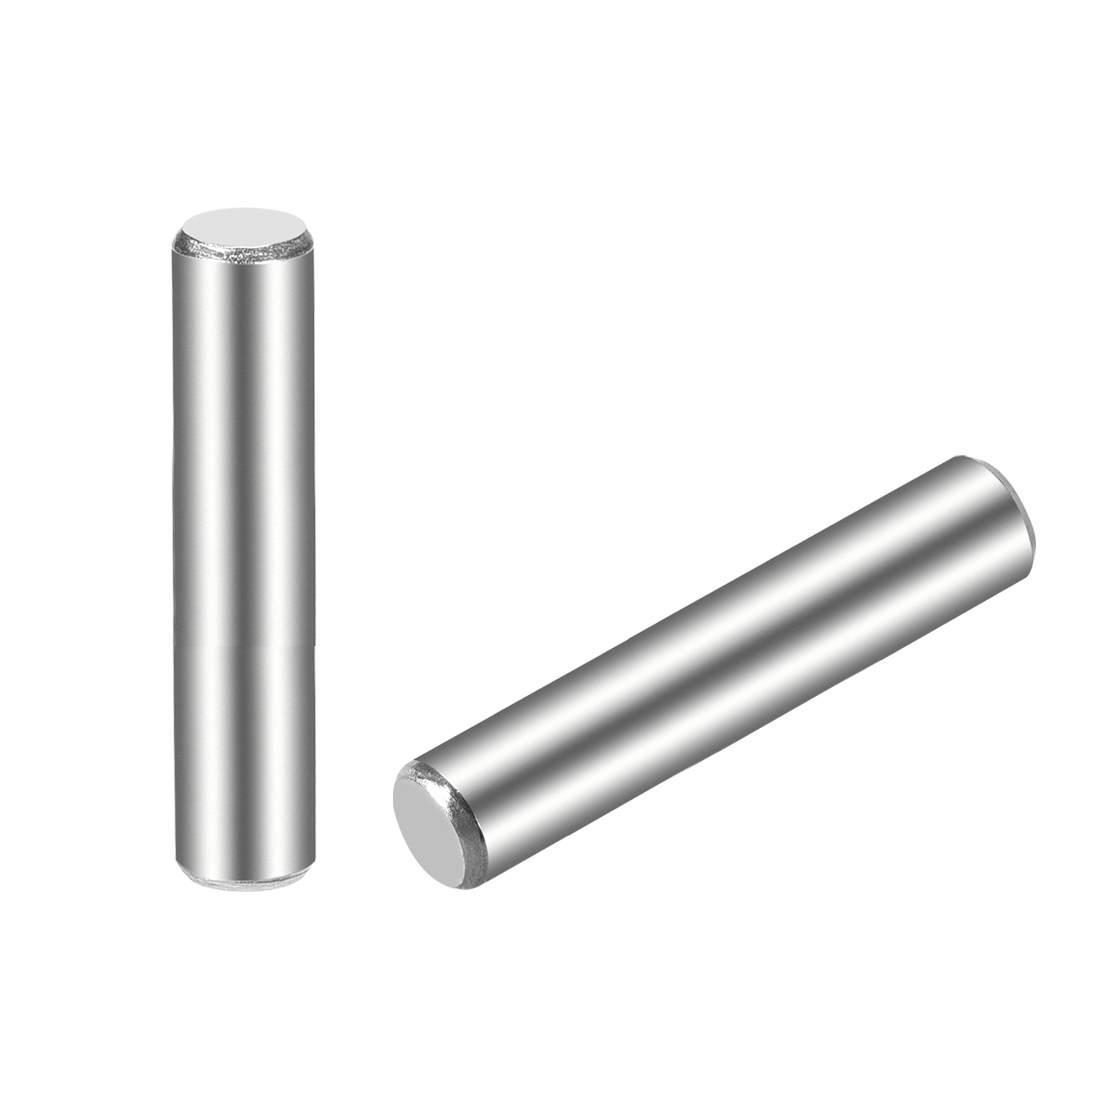 uxcell 15Pcs 5mm x 30mm Dowel Pin 304 Stainless Steel Cylindrical Shelf Support Pin|Dowel| |  -